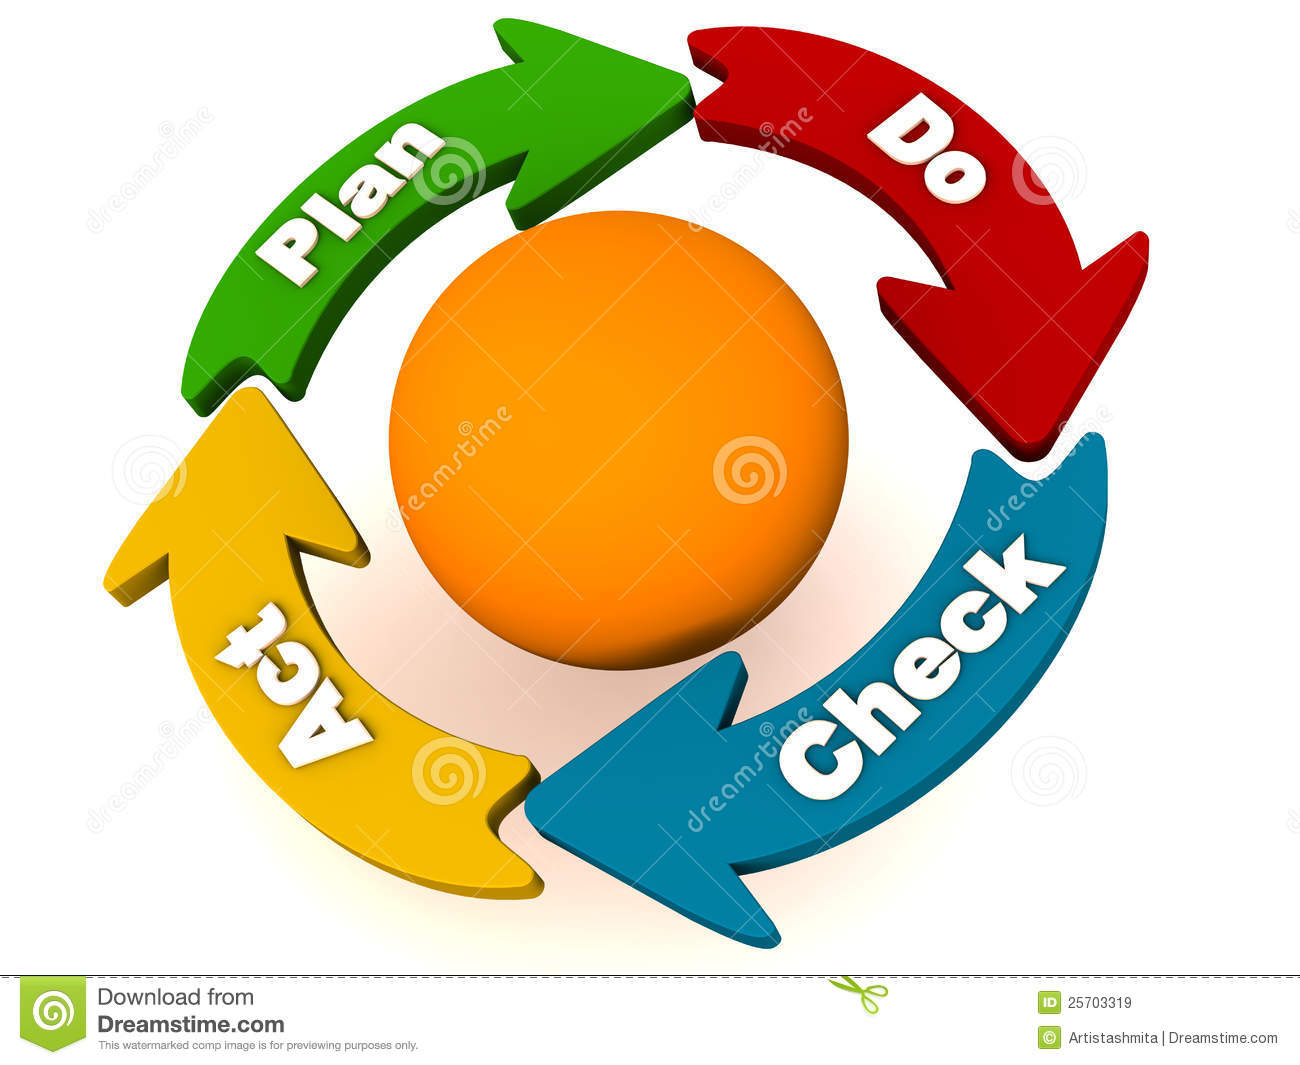 Pdca Plan Do Check Act Cycle With Arrows Going Around An Orange Colored Sphere Labeled Adjust